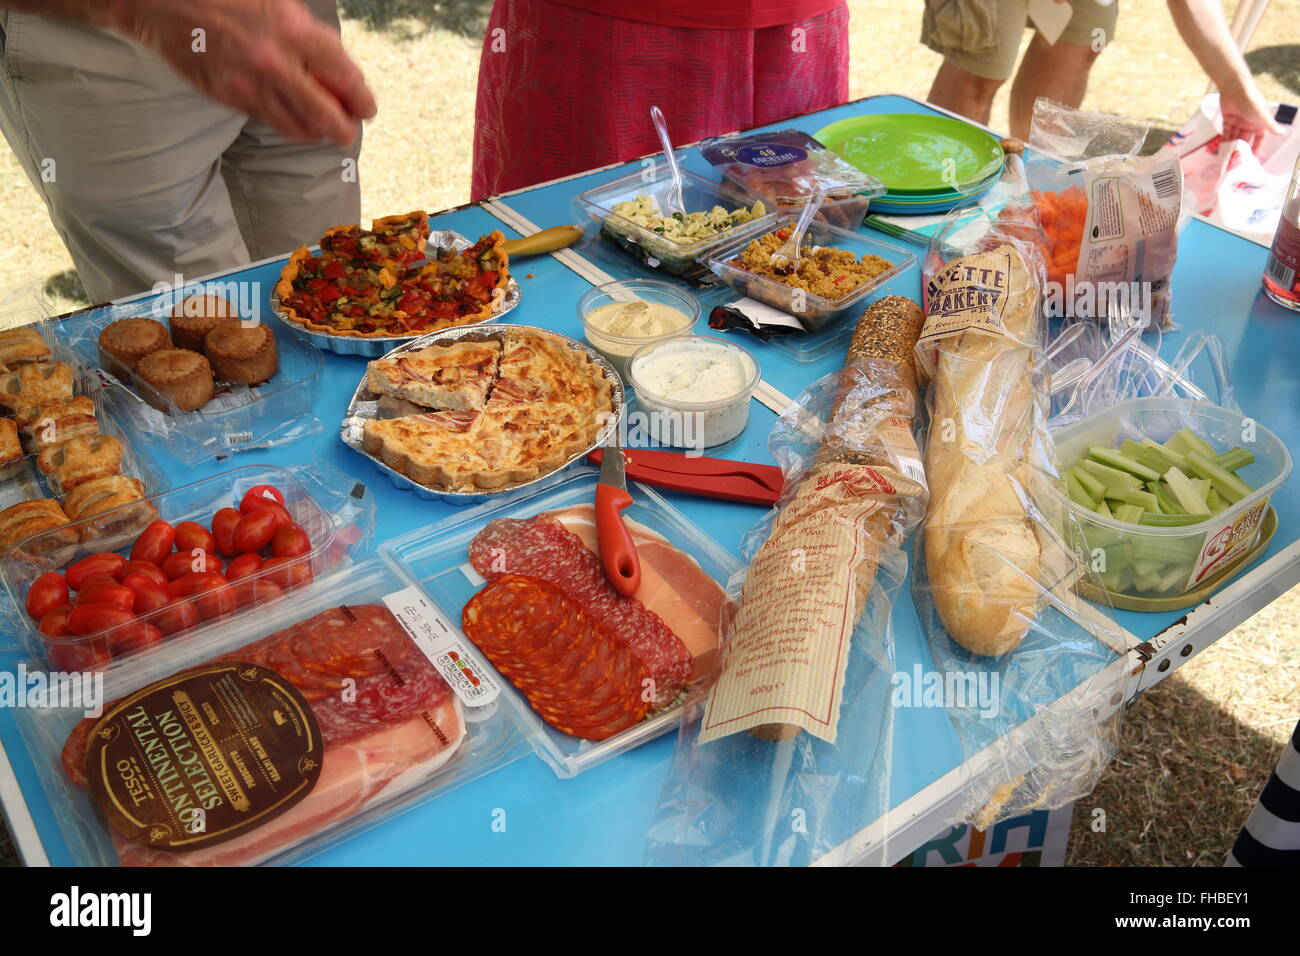 A summer picnic table for a family party in Bushey Park, in Middlesex, England, UK Stock Photo